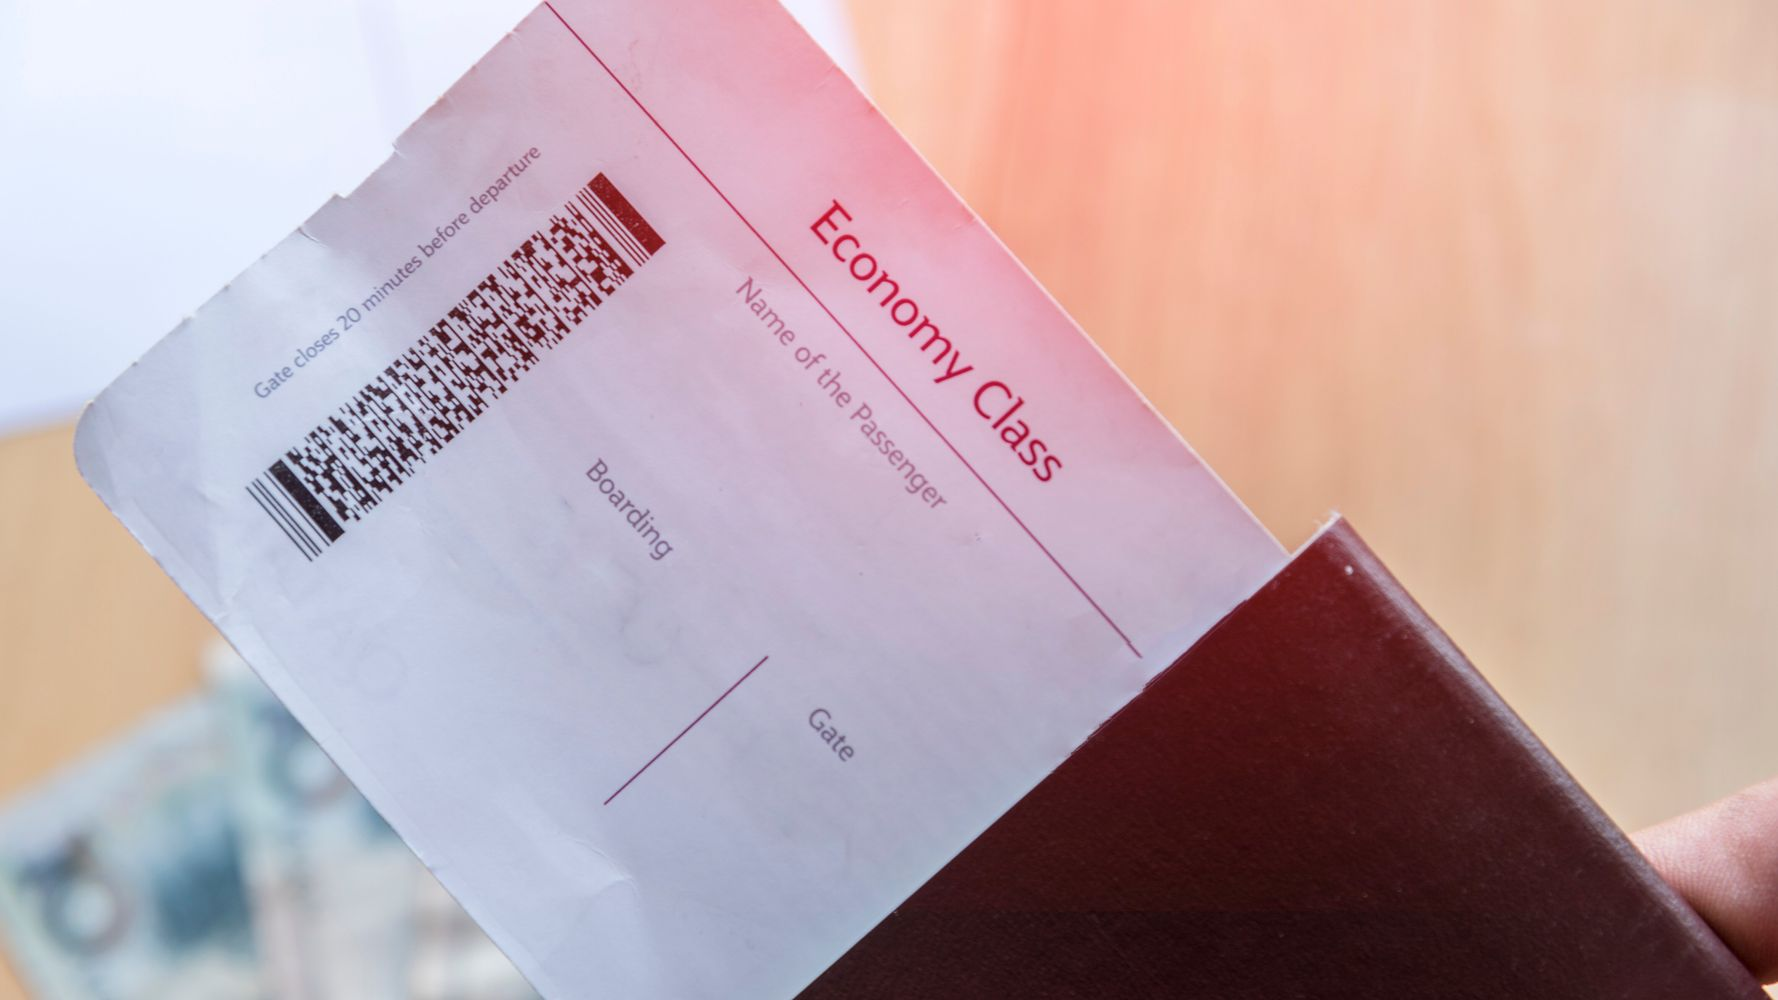 How Hackers Can Use Your Boarding Pass To Easily Steal Personal Information